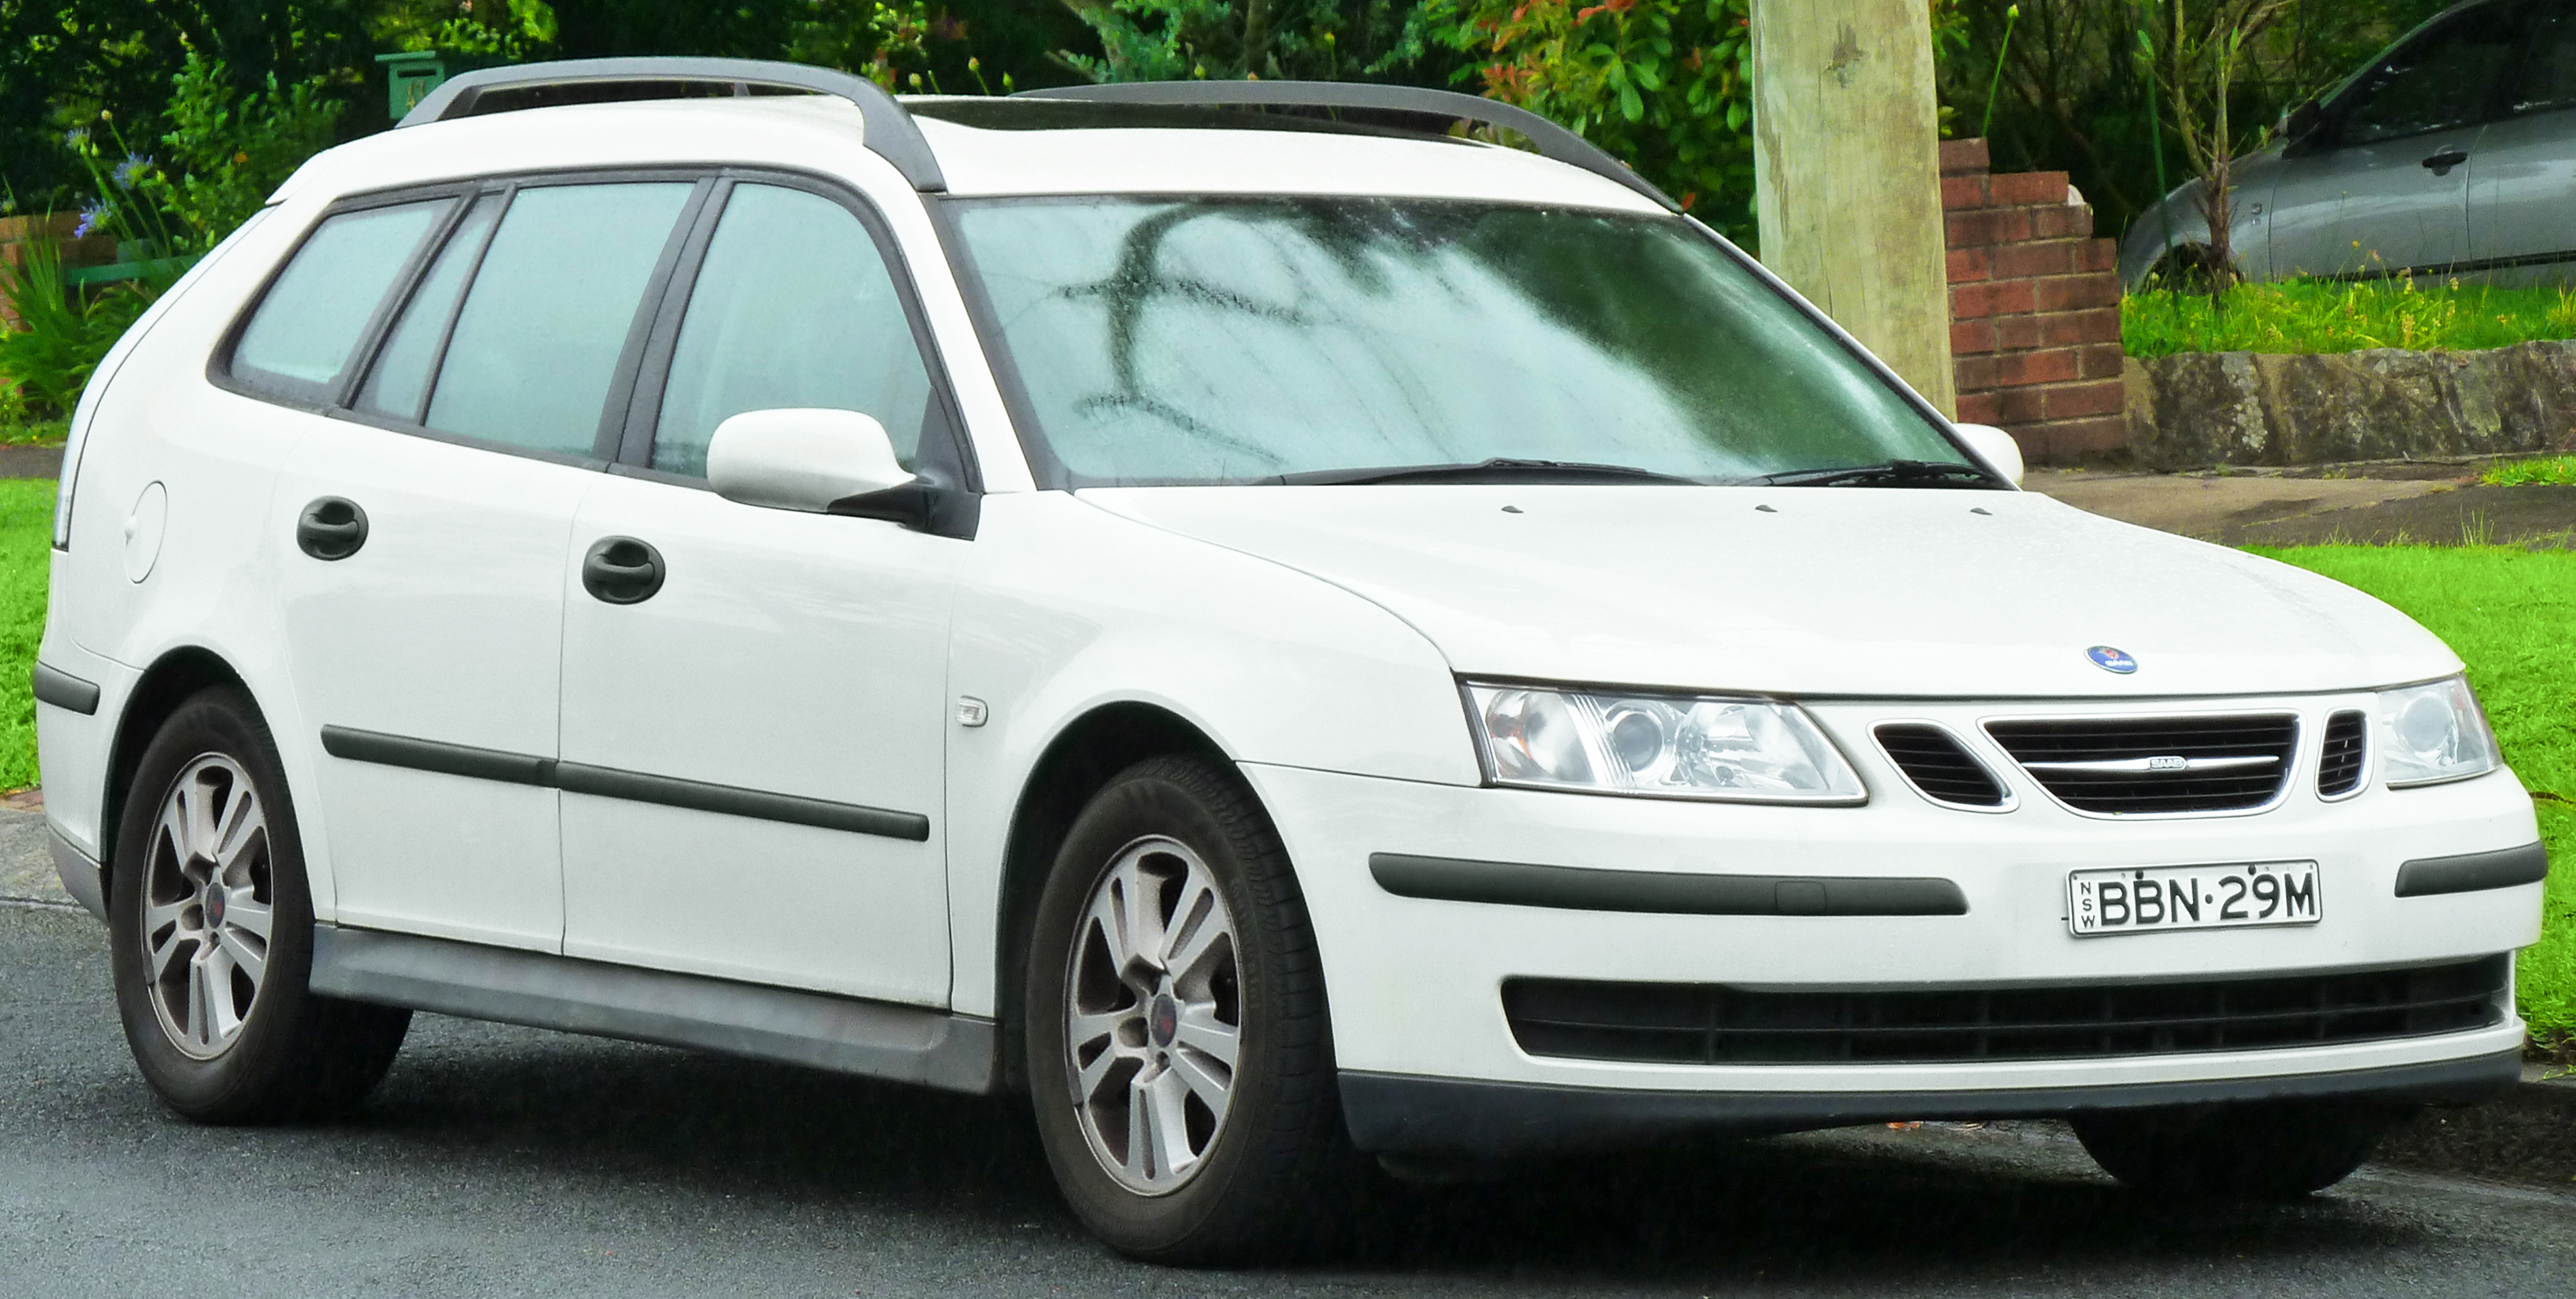 Galerie Foto moreover En additionally Adele Neuhauser Faehrt Saab in addition Sick r together with 5. on saab 9 3 s